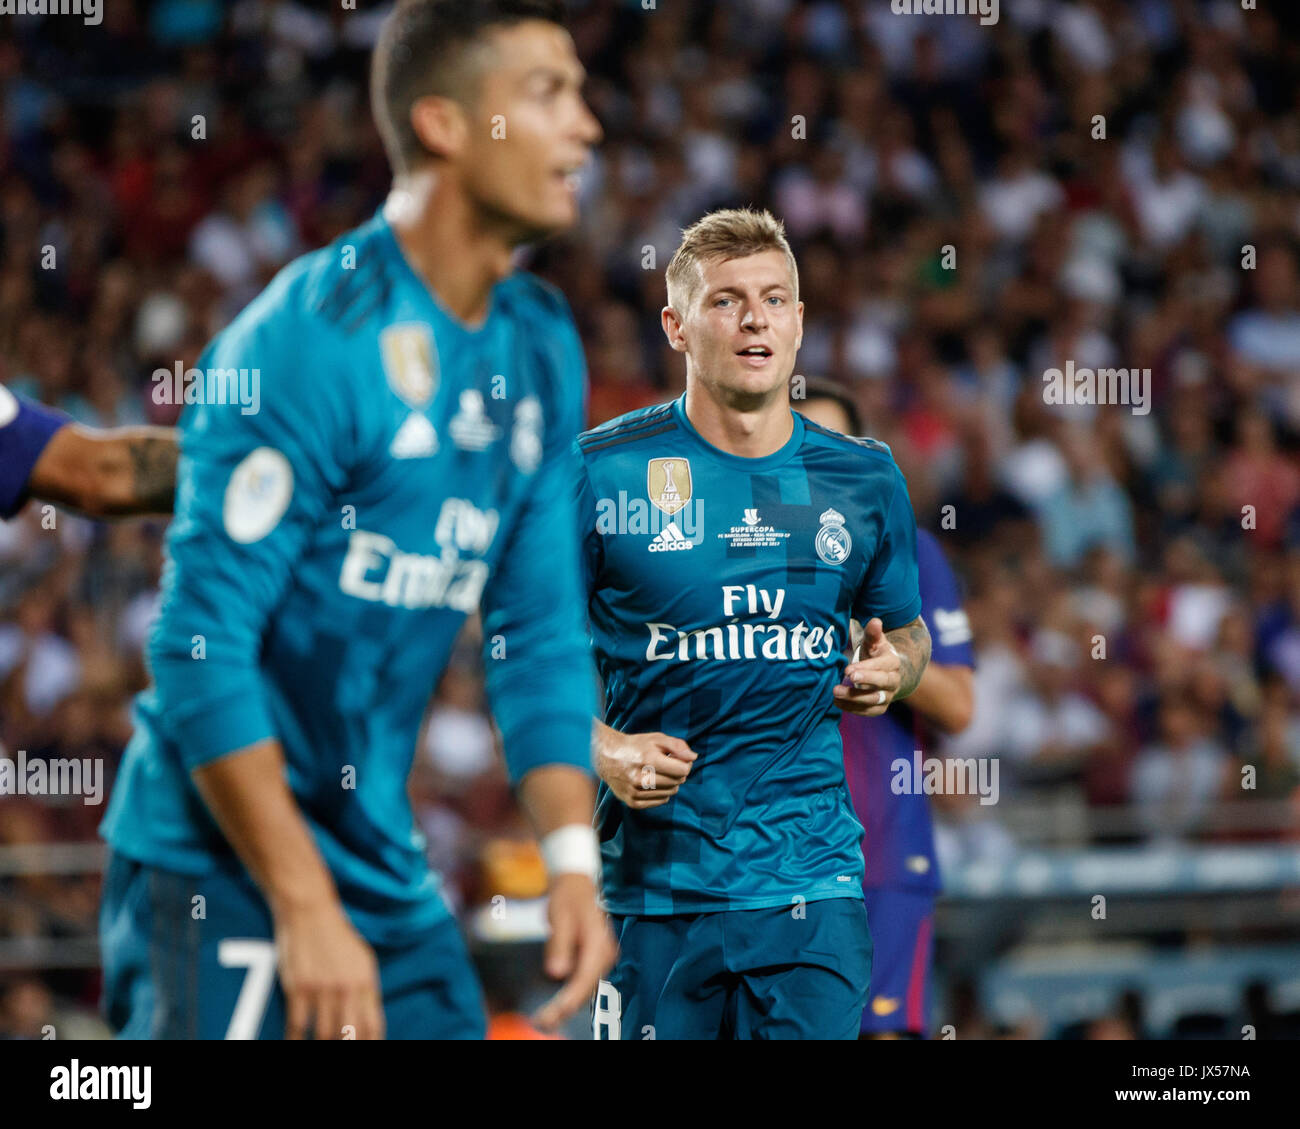 Camp Nou Stadium, Barcelona, Spain. 13th of August, 2017. Super Cup of Spain between FC Barcelona and Real Madrid. Kroos. Credit: David Ramírez/Alamy Live News - Stock Image